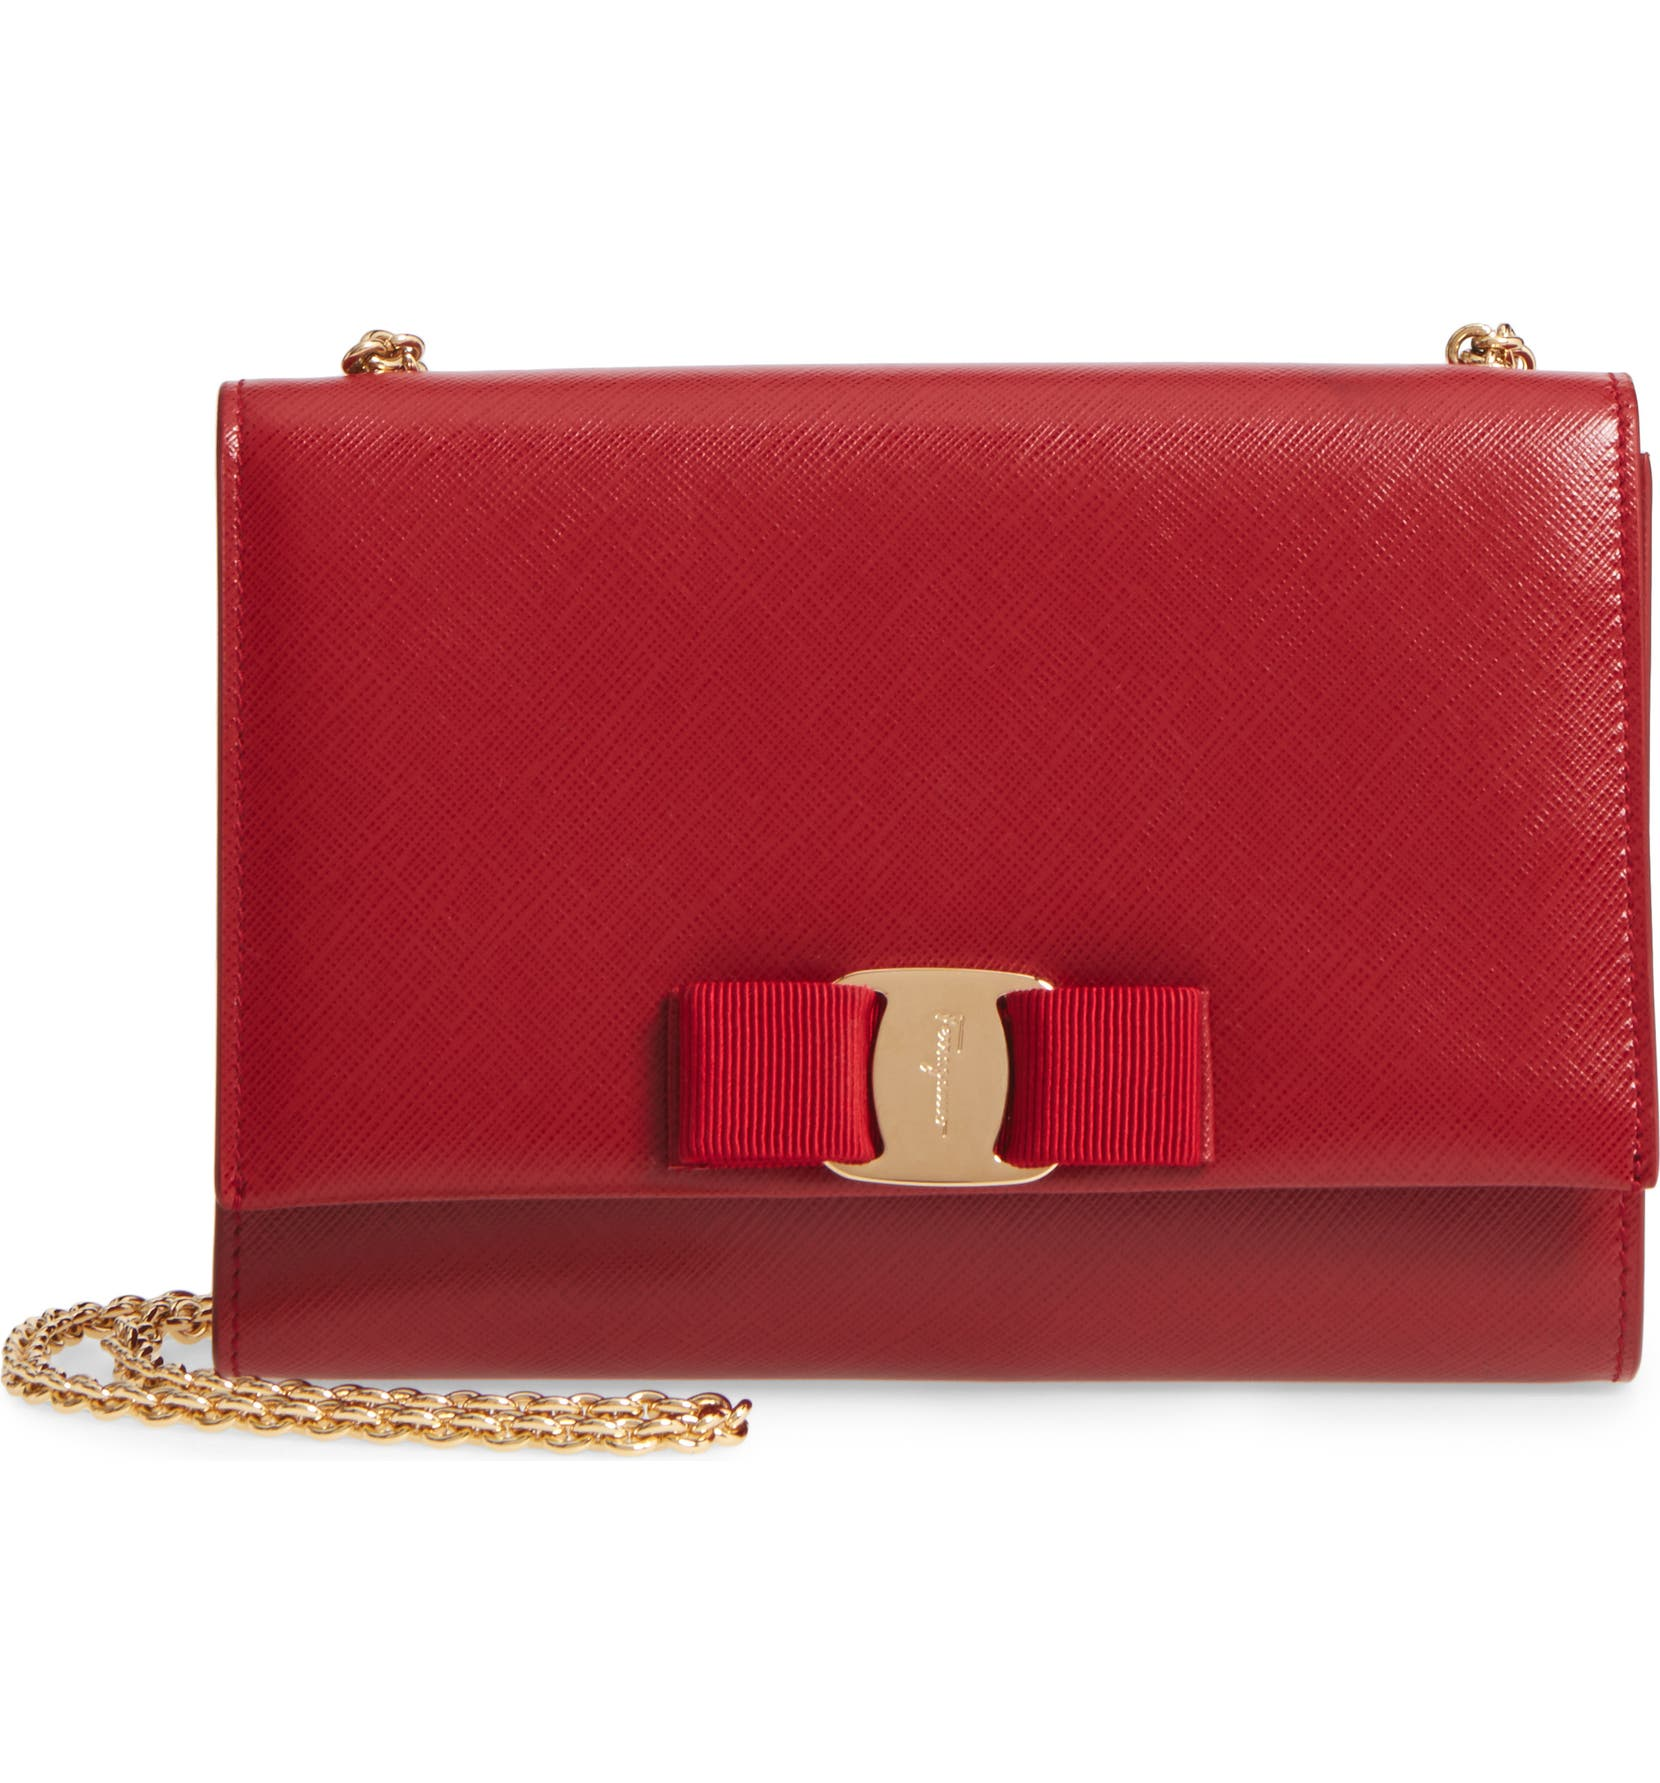 Salvatore Ferragamo Mini Vara Leather Crossbody Bag  0ed97743879ea